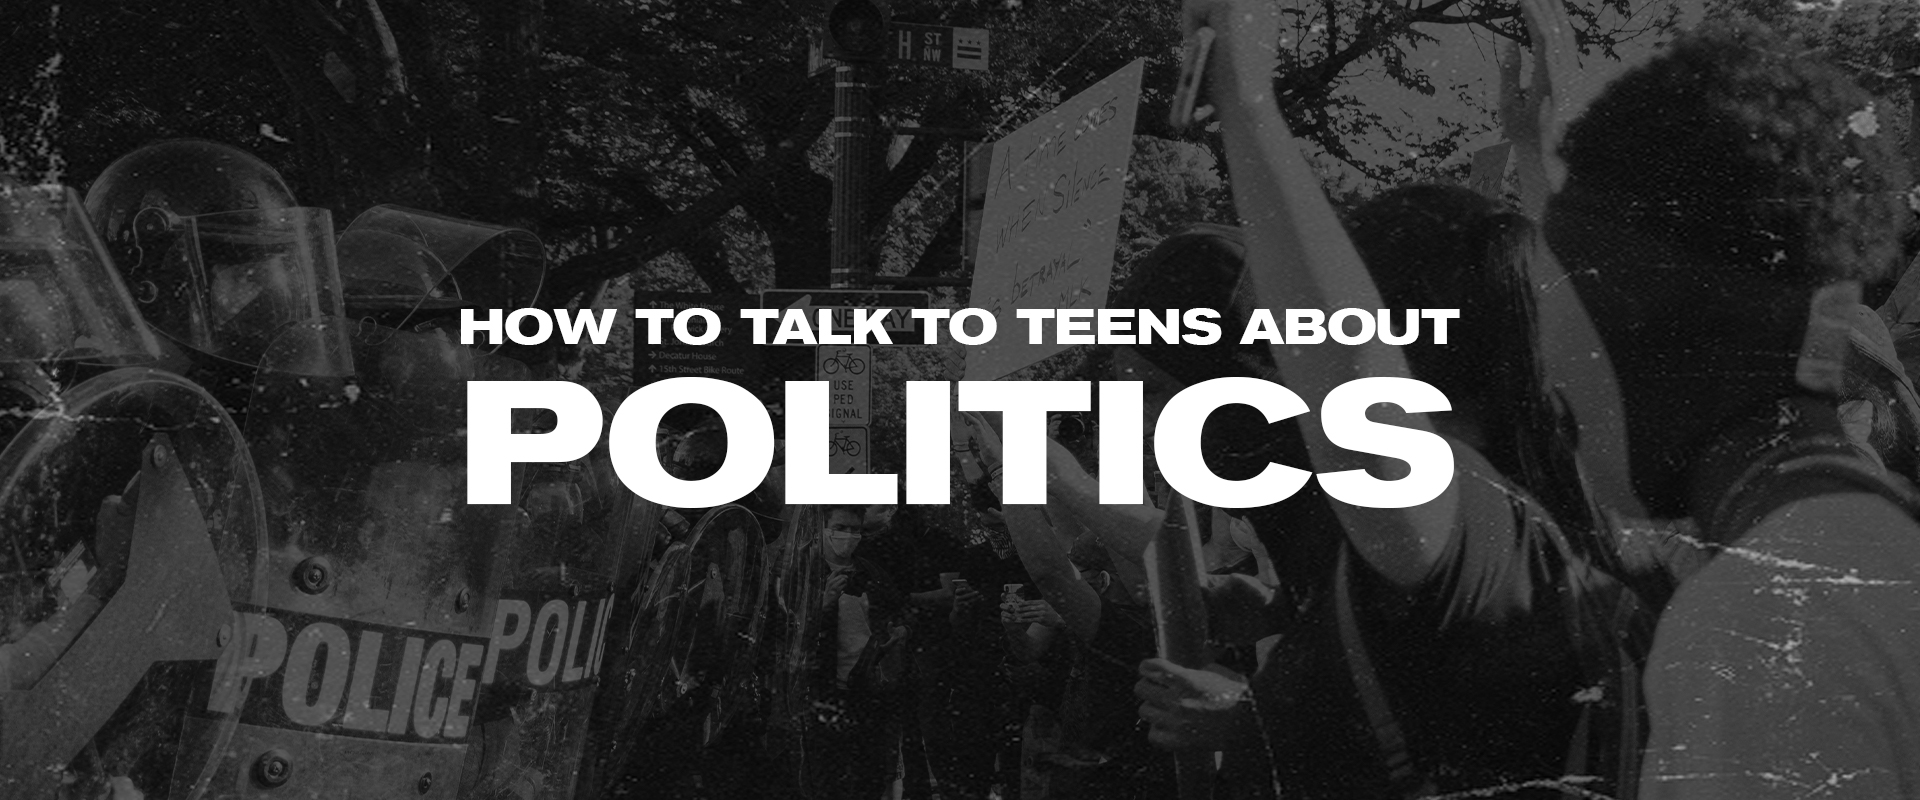 How To Talk To Teens About Politics